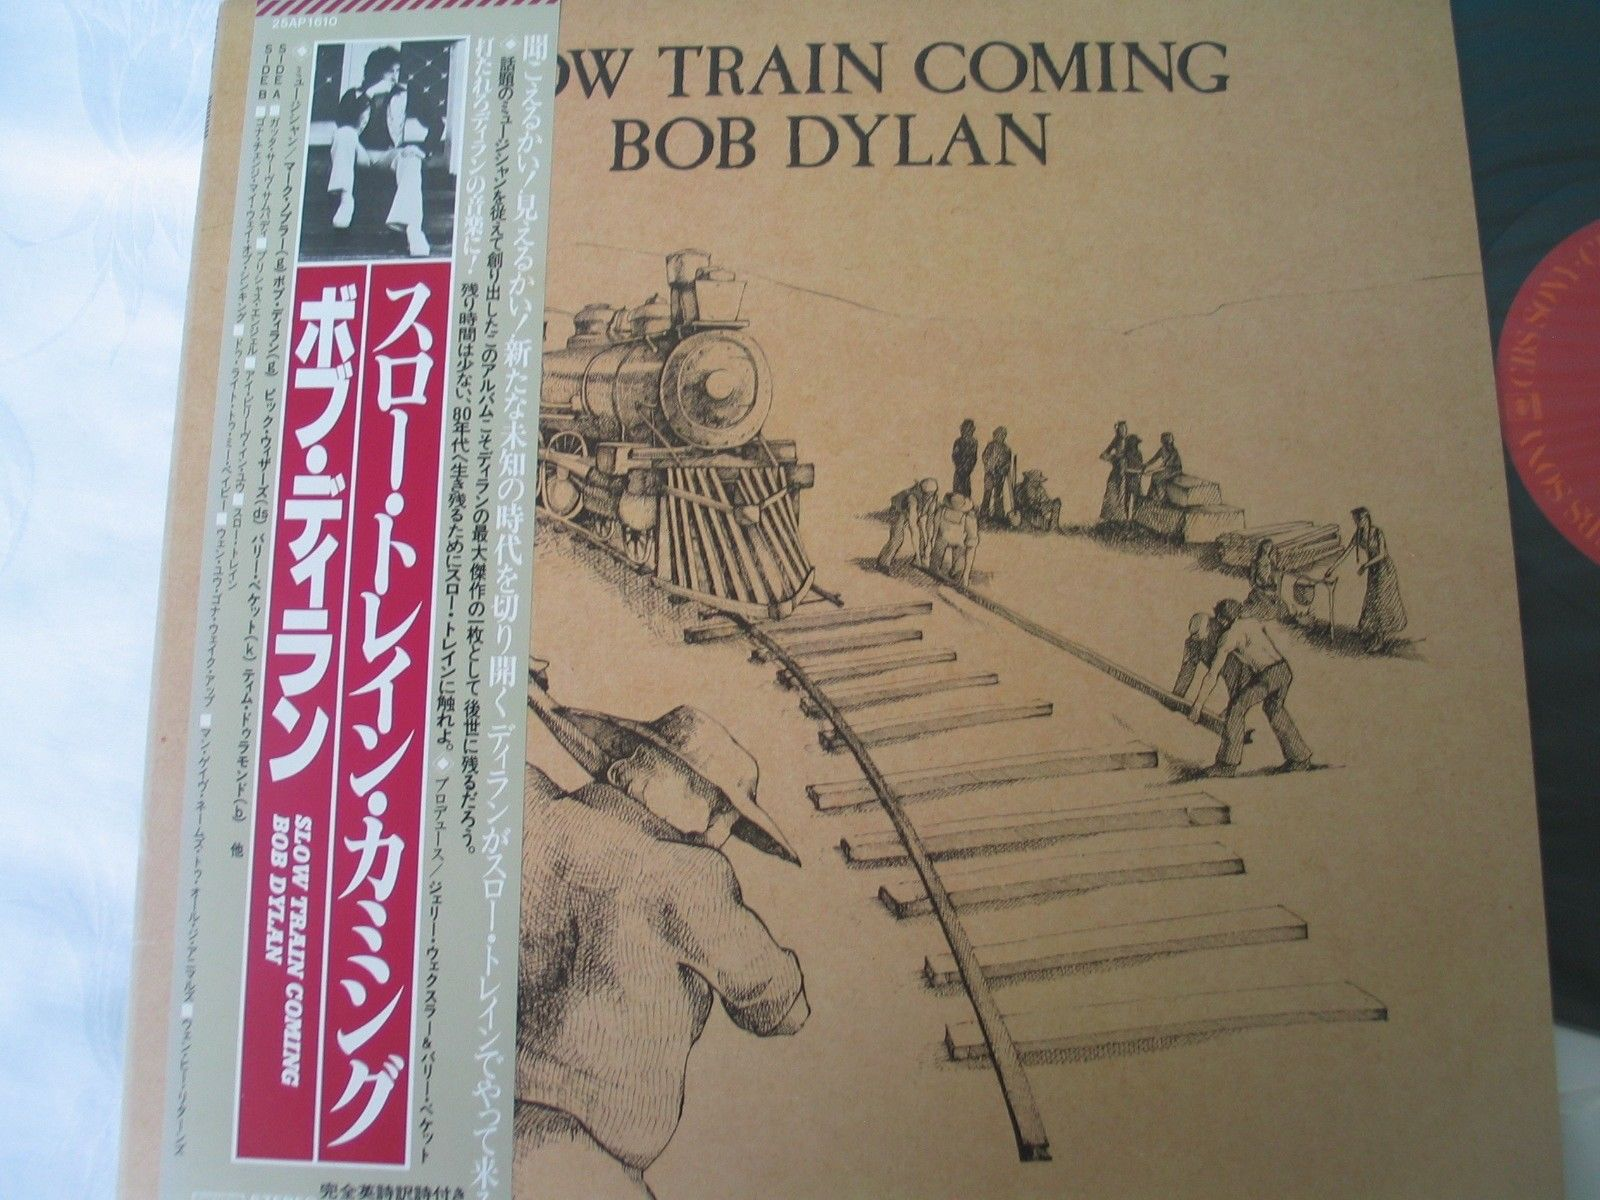 Bob Dylan - Slow Train Coming - LP Japan Pressing near mint